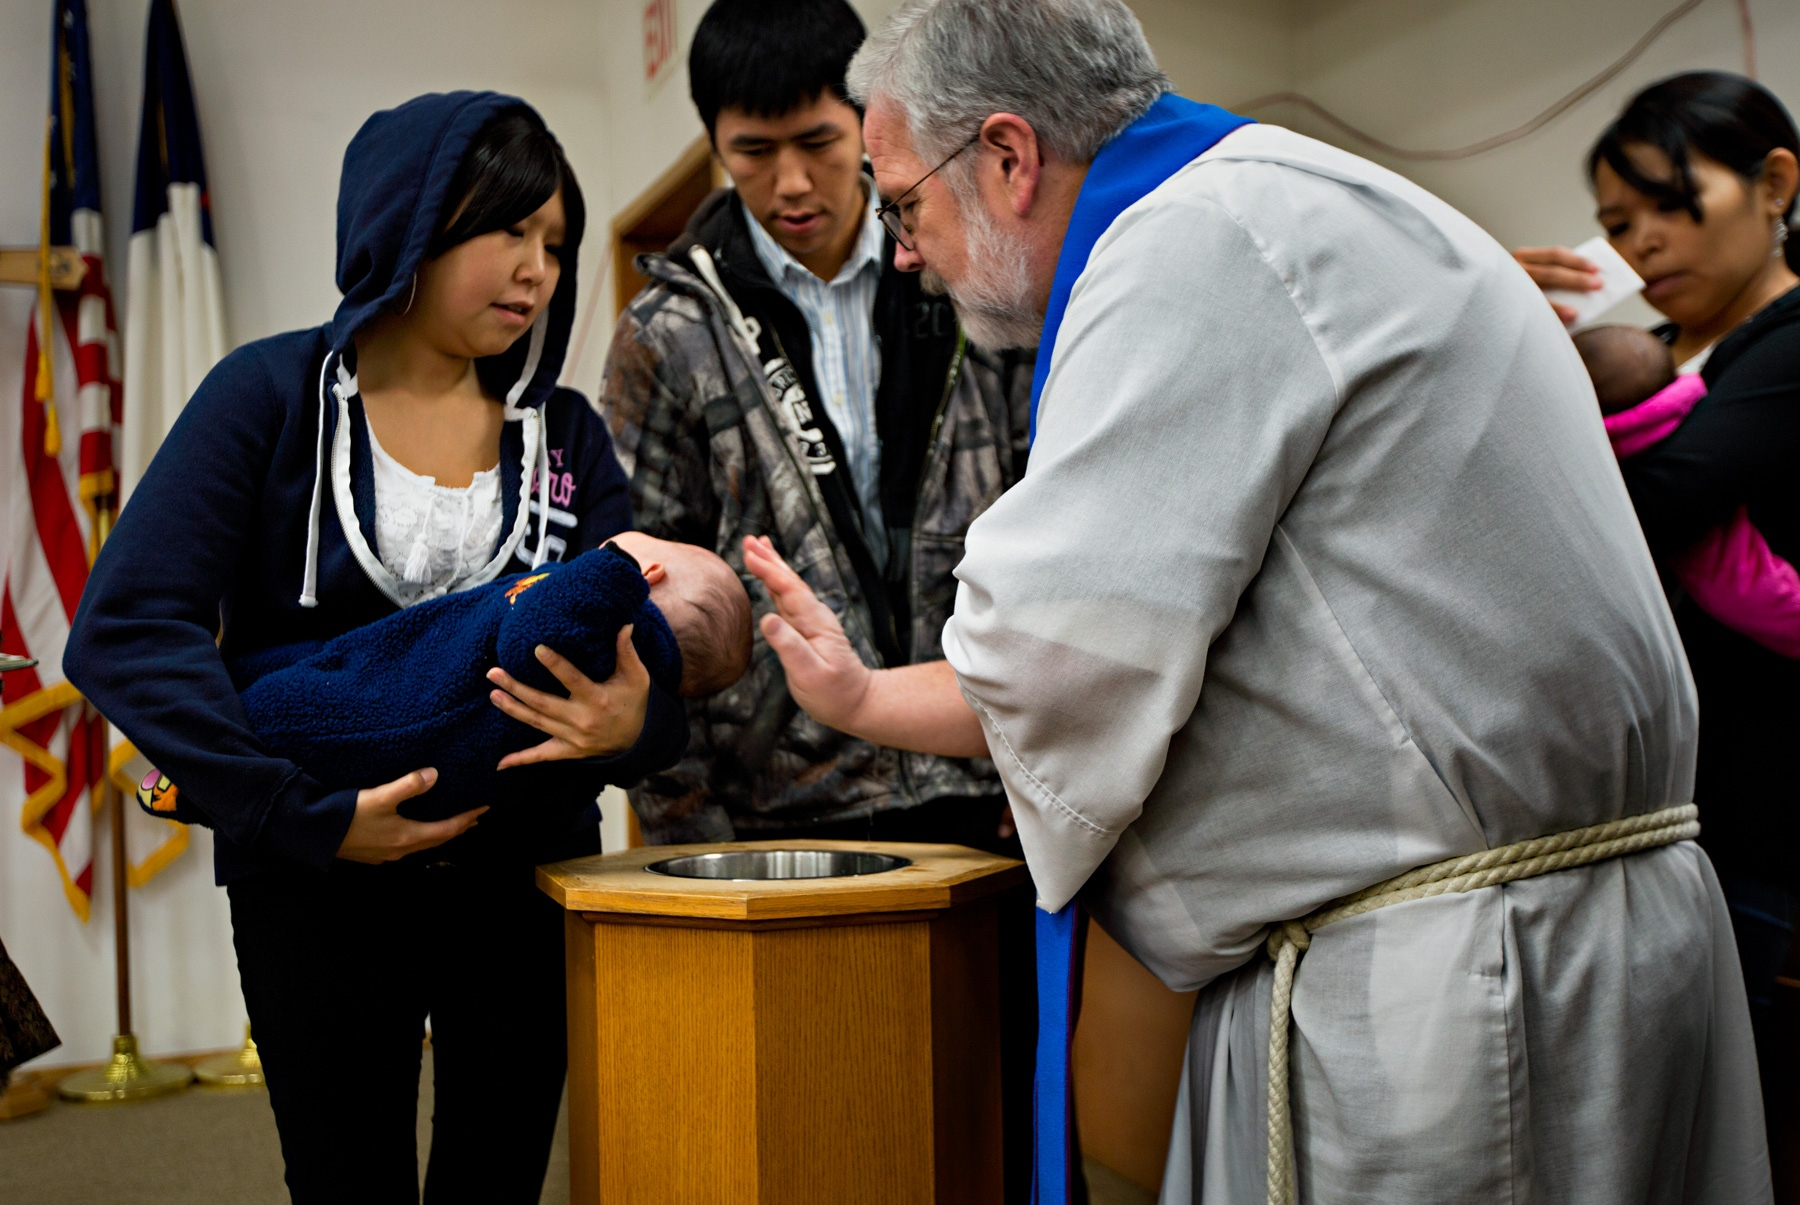 Although most residents of Shishmaref are officially members of the Lutheran Church (the only church in the village), they also observe and respect their traditional Eskimo practices and beliefs. During the Sunday service, Pastor Marvin Jonasen conducts baptism for new parents.